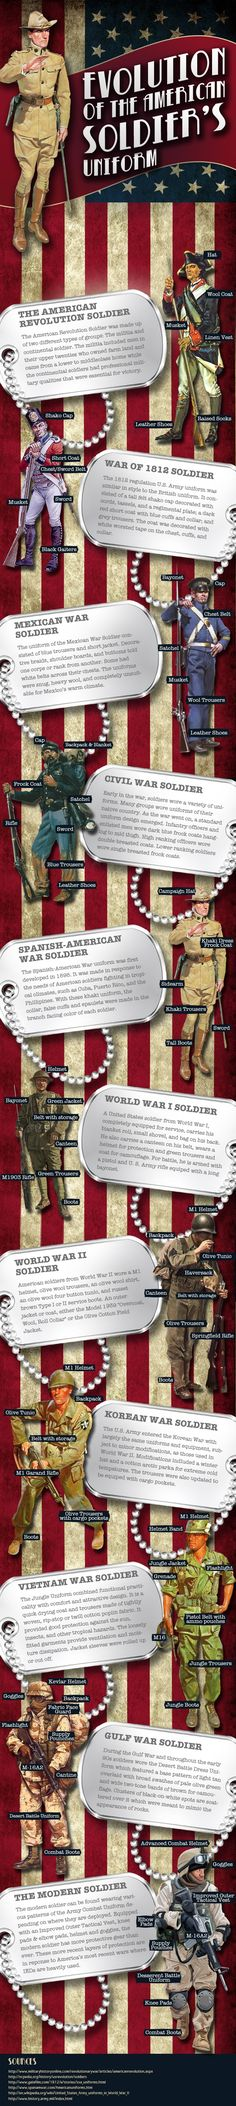 History of Army uniform Interesting poster:  What will it look like if women actually go into combat.  Is the first batch a sacrifice?